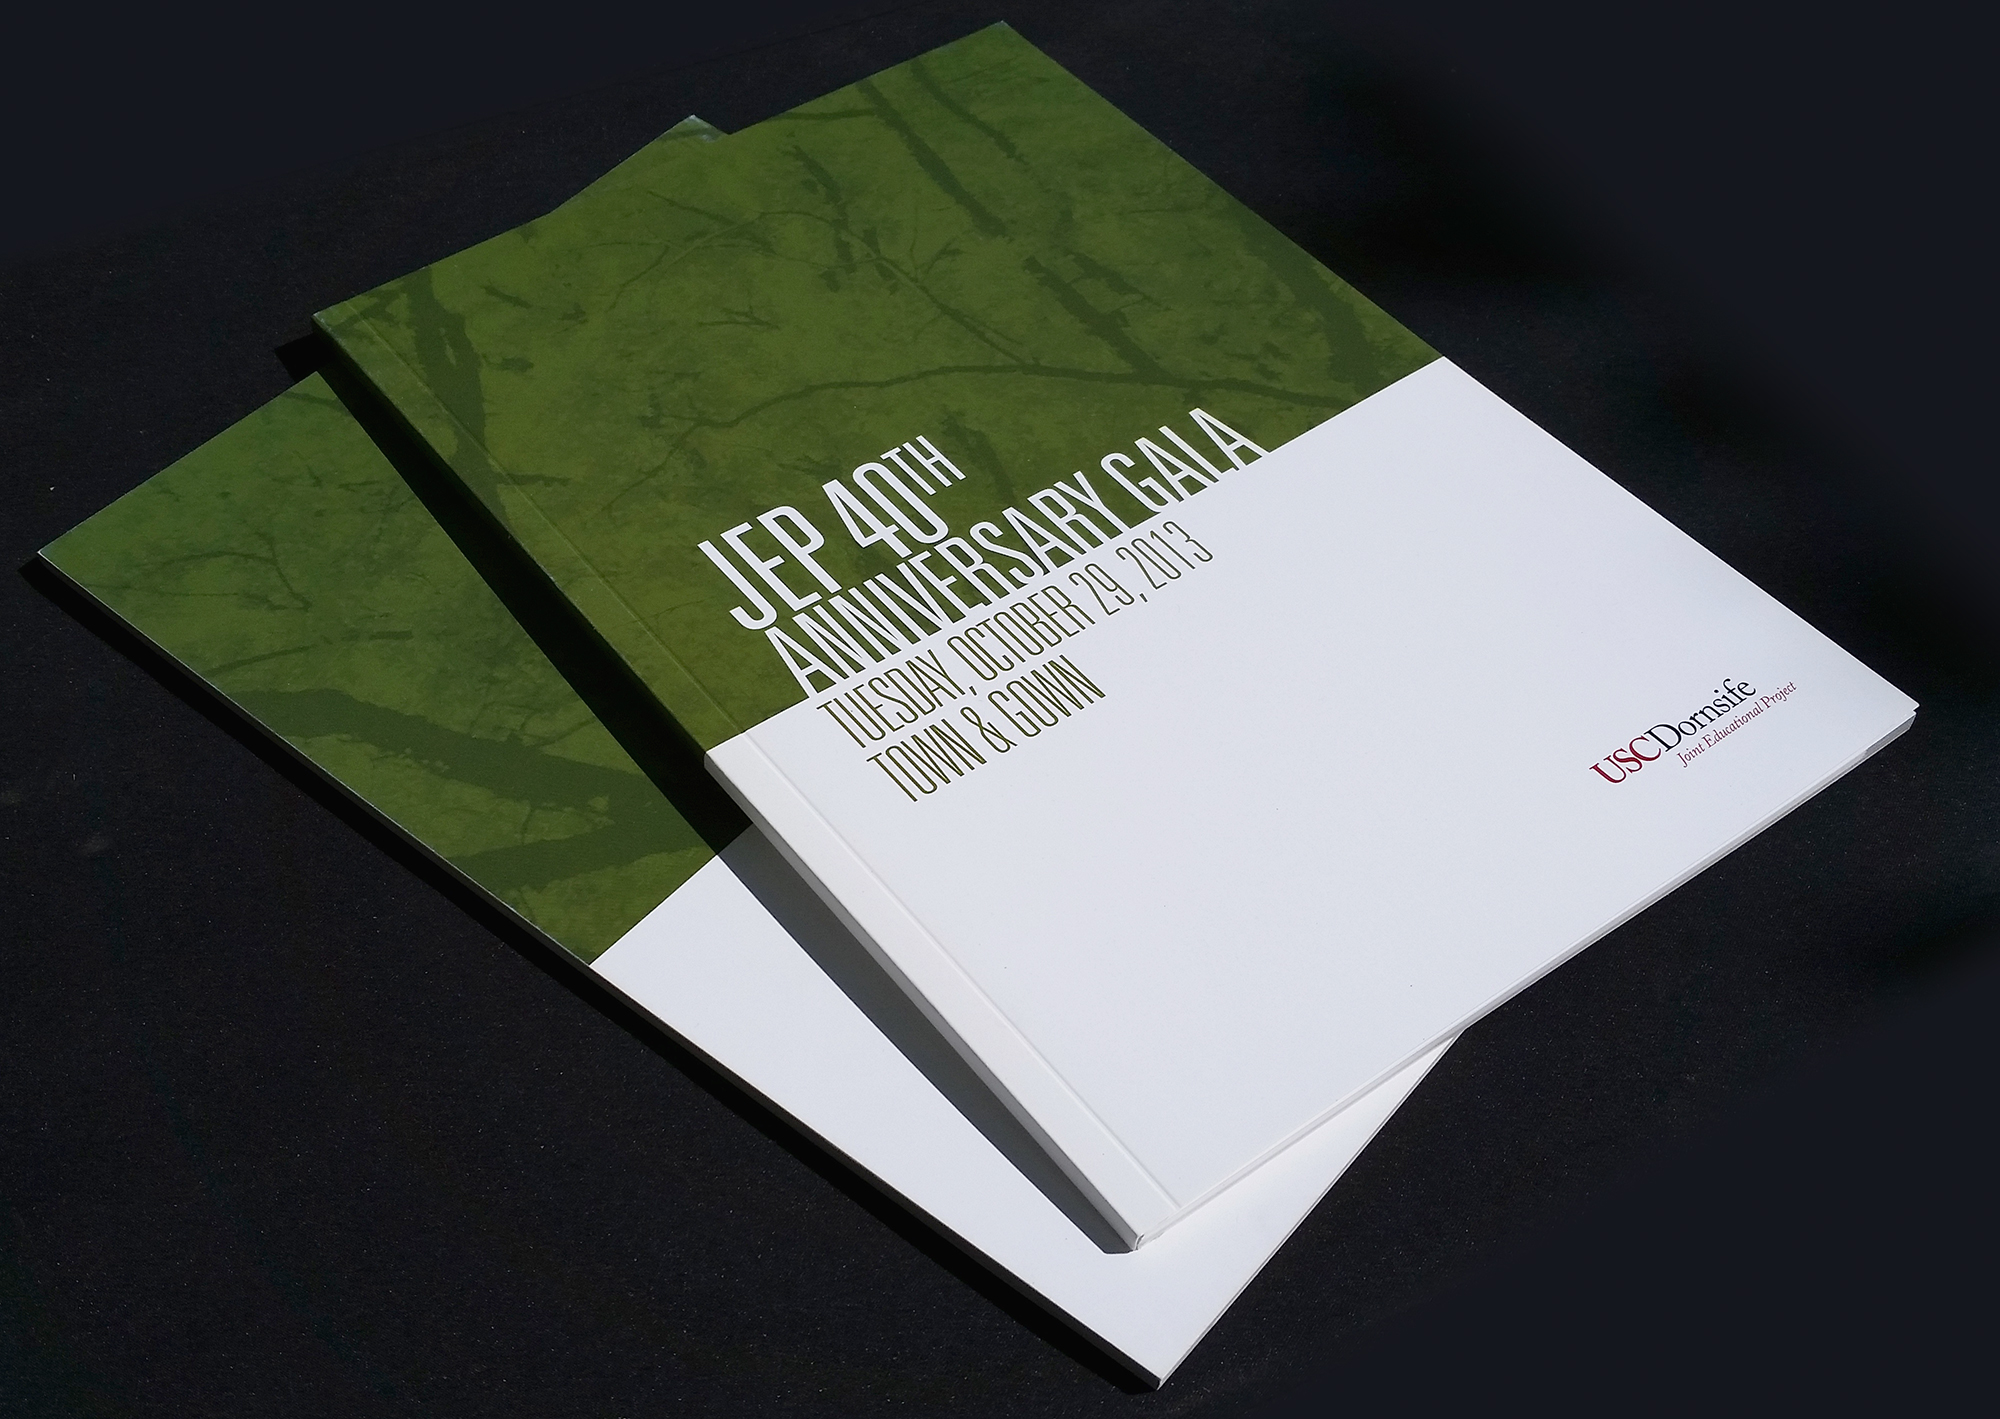 jep-book-cover-image